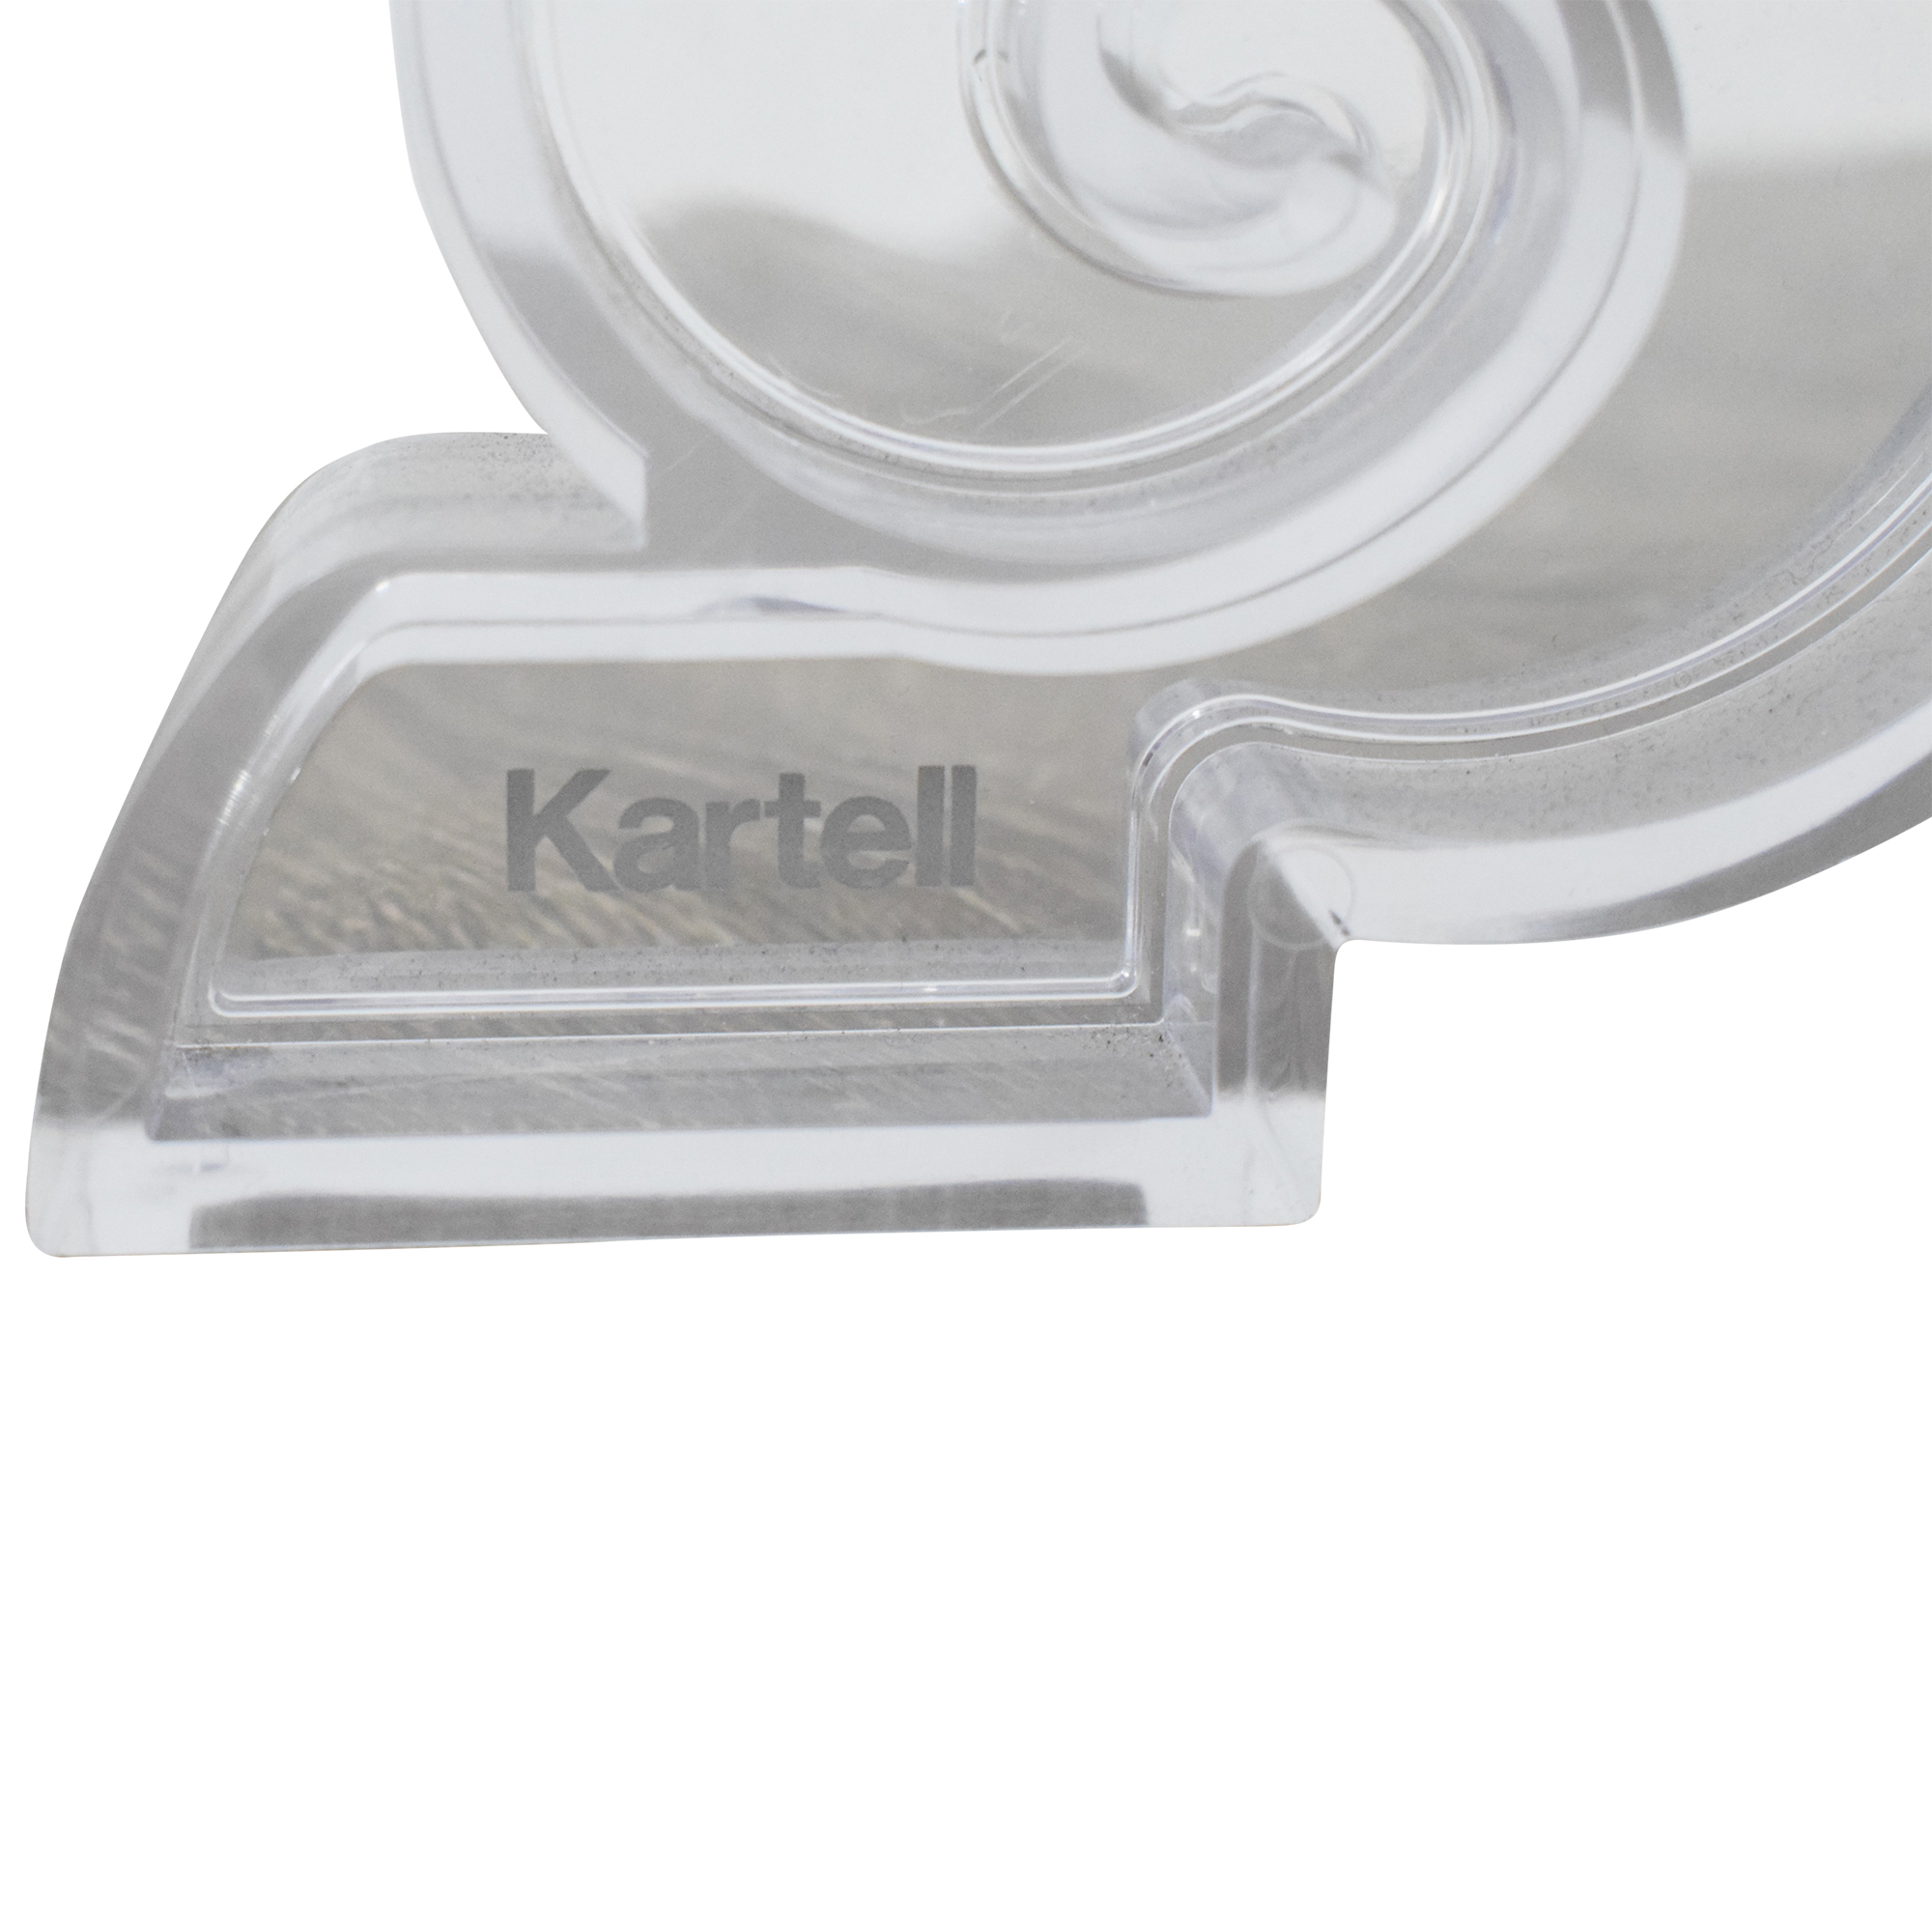 Kartell Kartell Bourgie Table Lamp ma